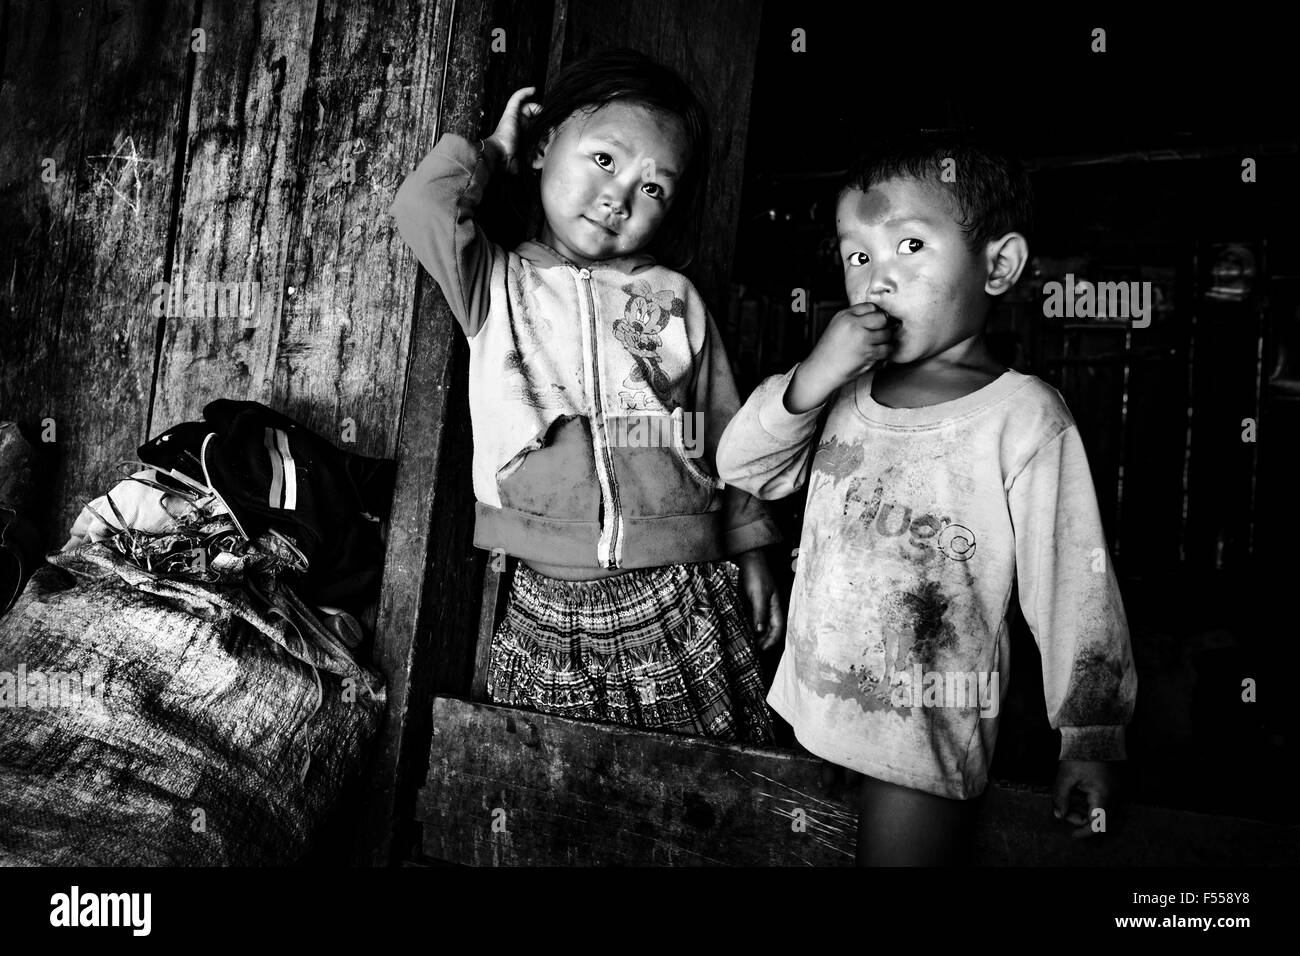 A brother and sister of the Hmong tribe outside their home in the Muong Hoa Valley, Lào Cai Provence, North - Stock Image